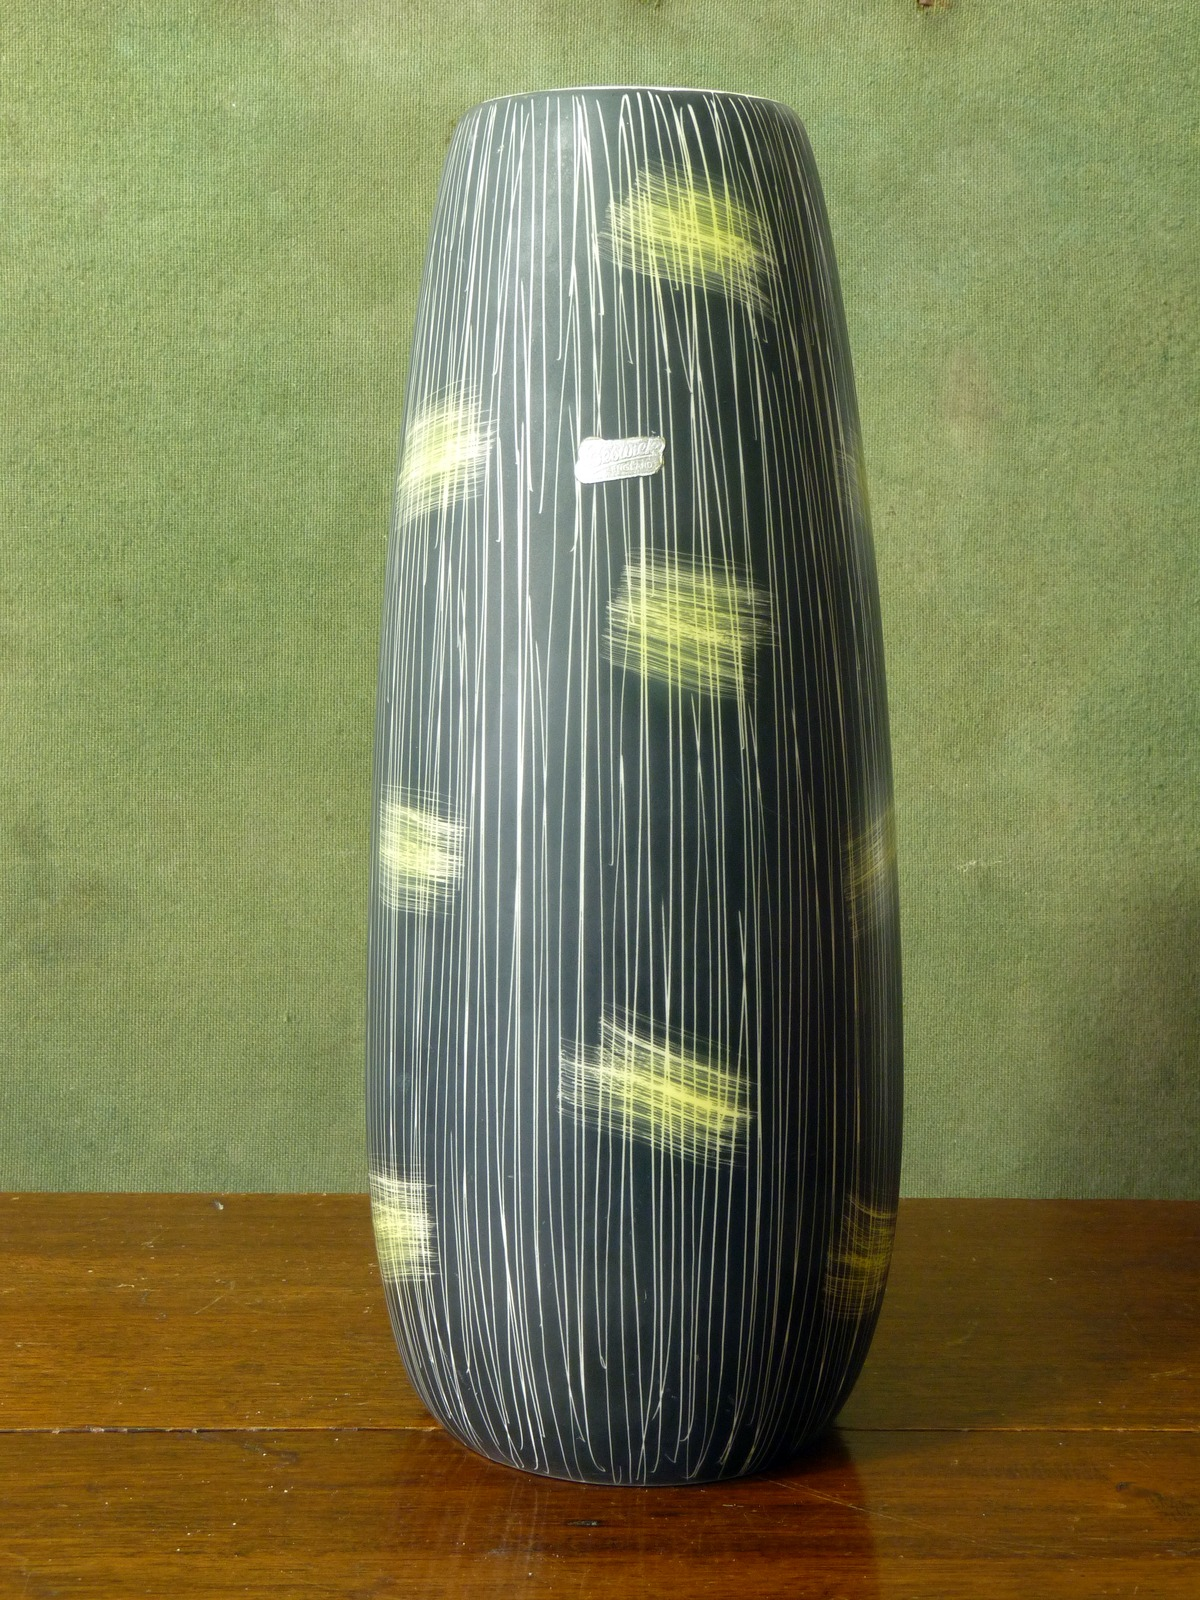 Beswick Lemon Yellow and Black Sgraffito Vase 7653